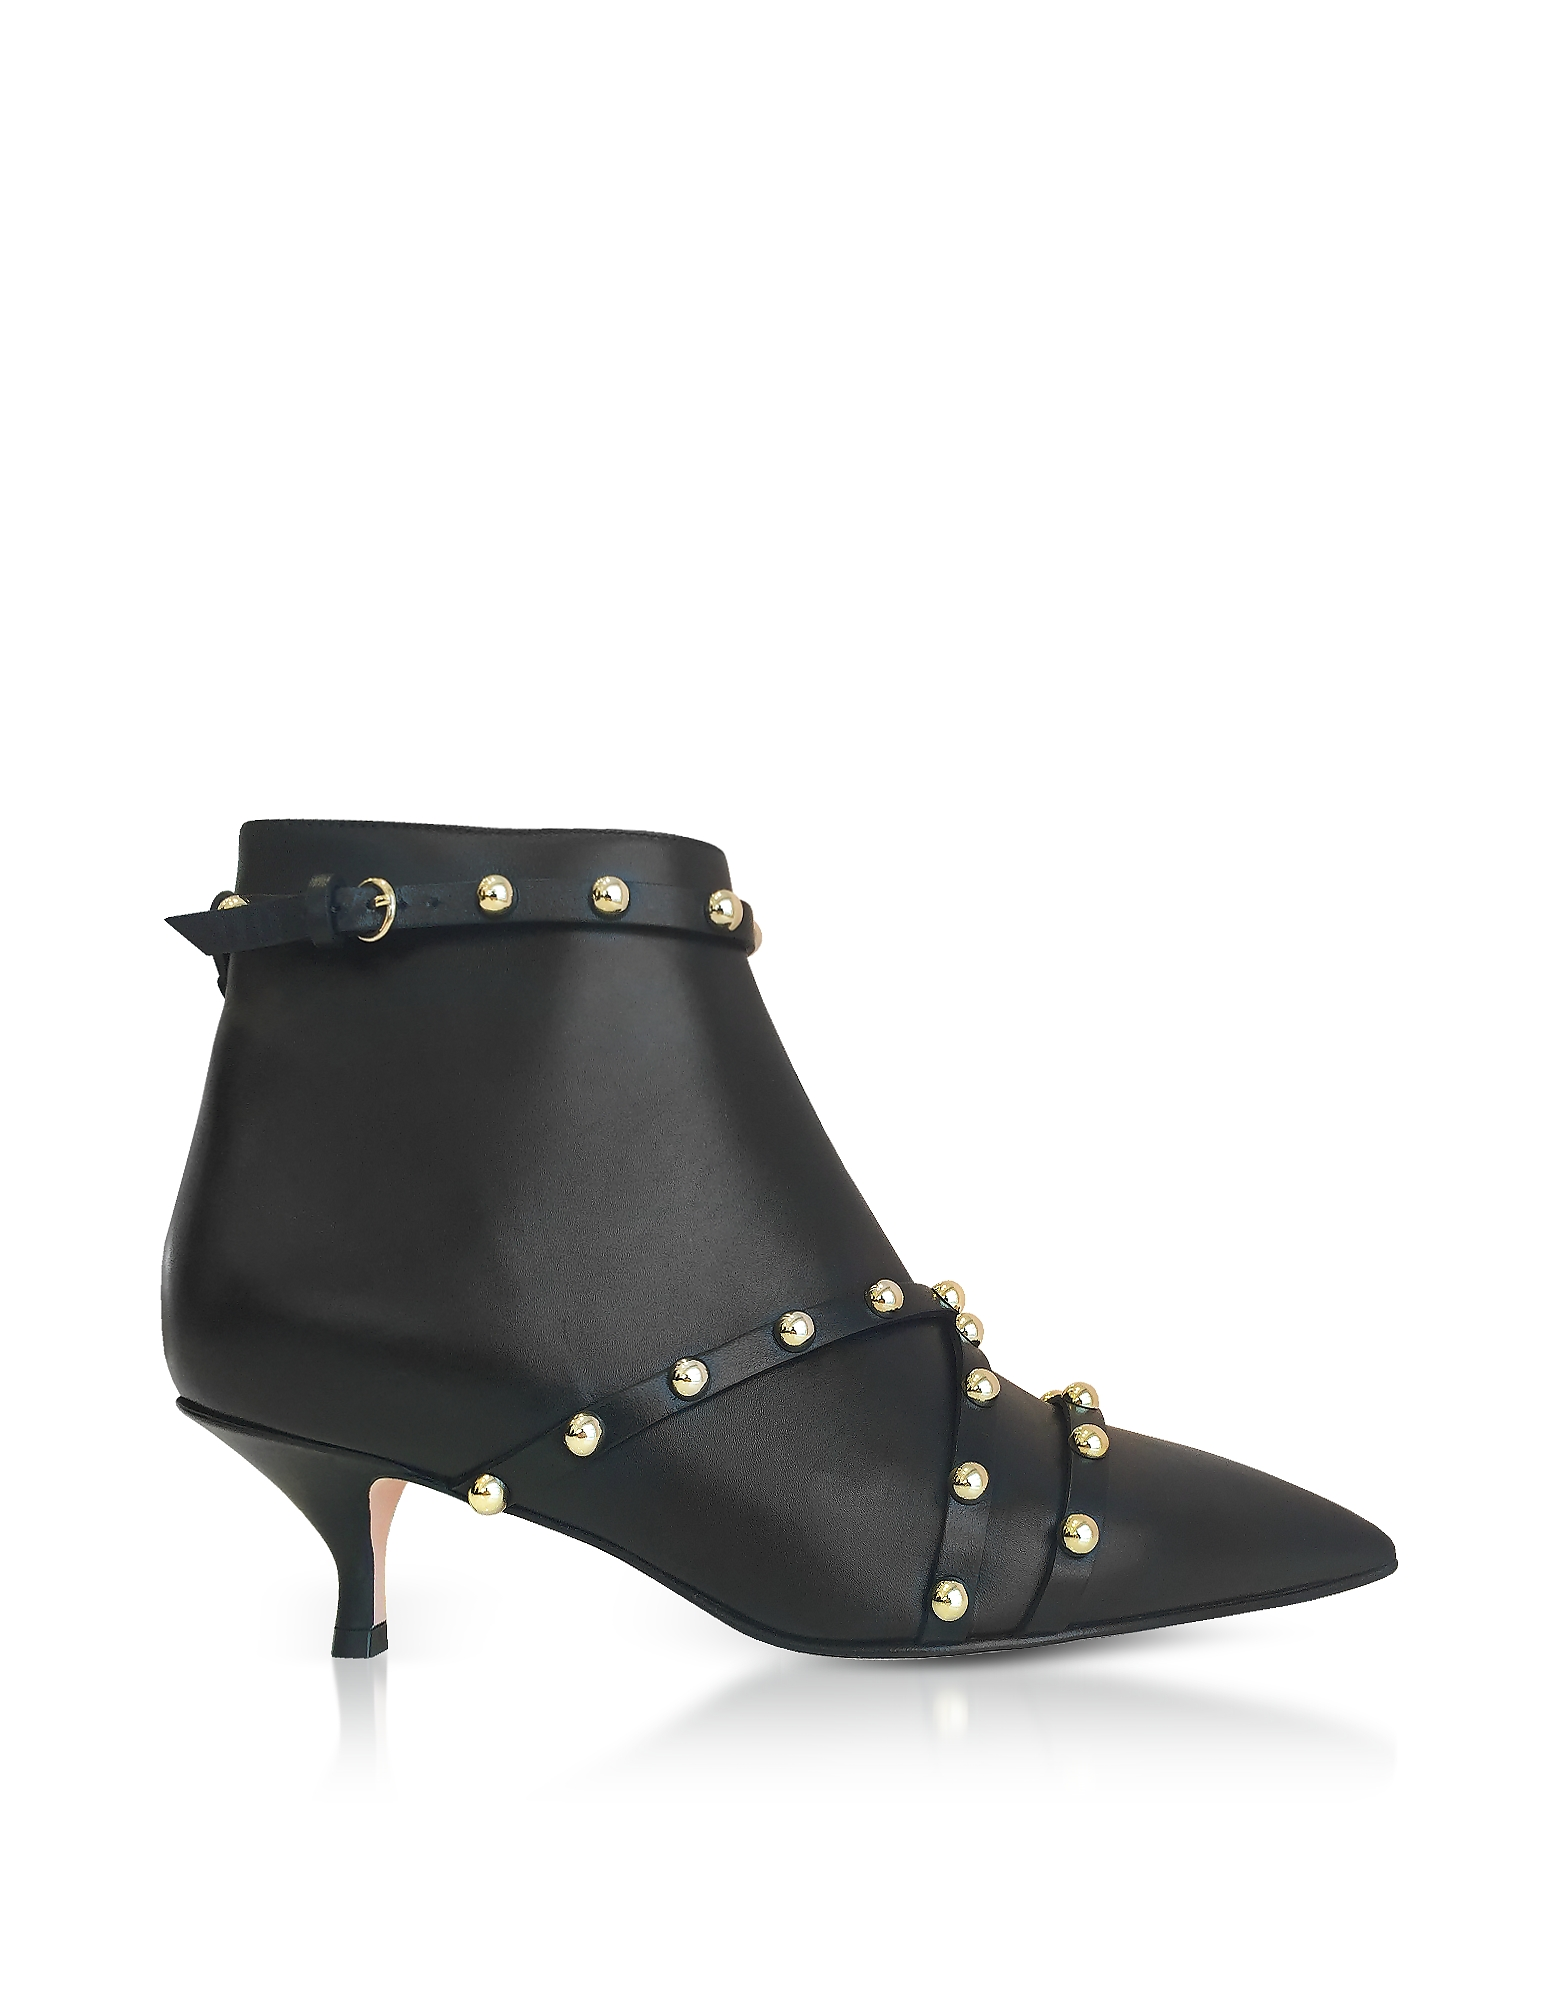 RED Valentino Shoes, Black Leather Ankle Boots